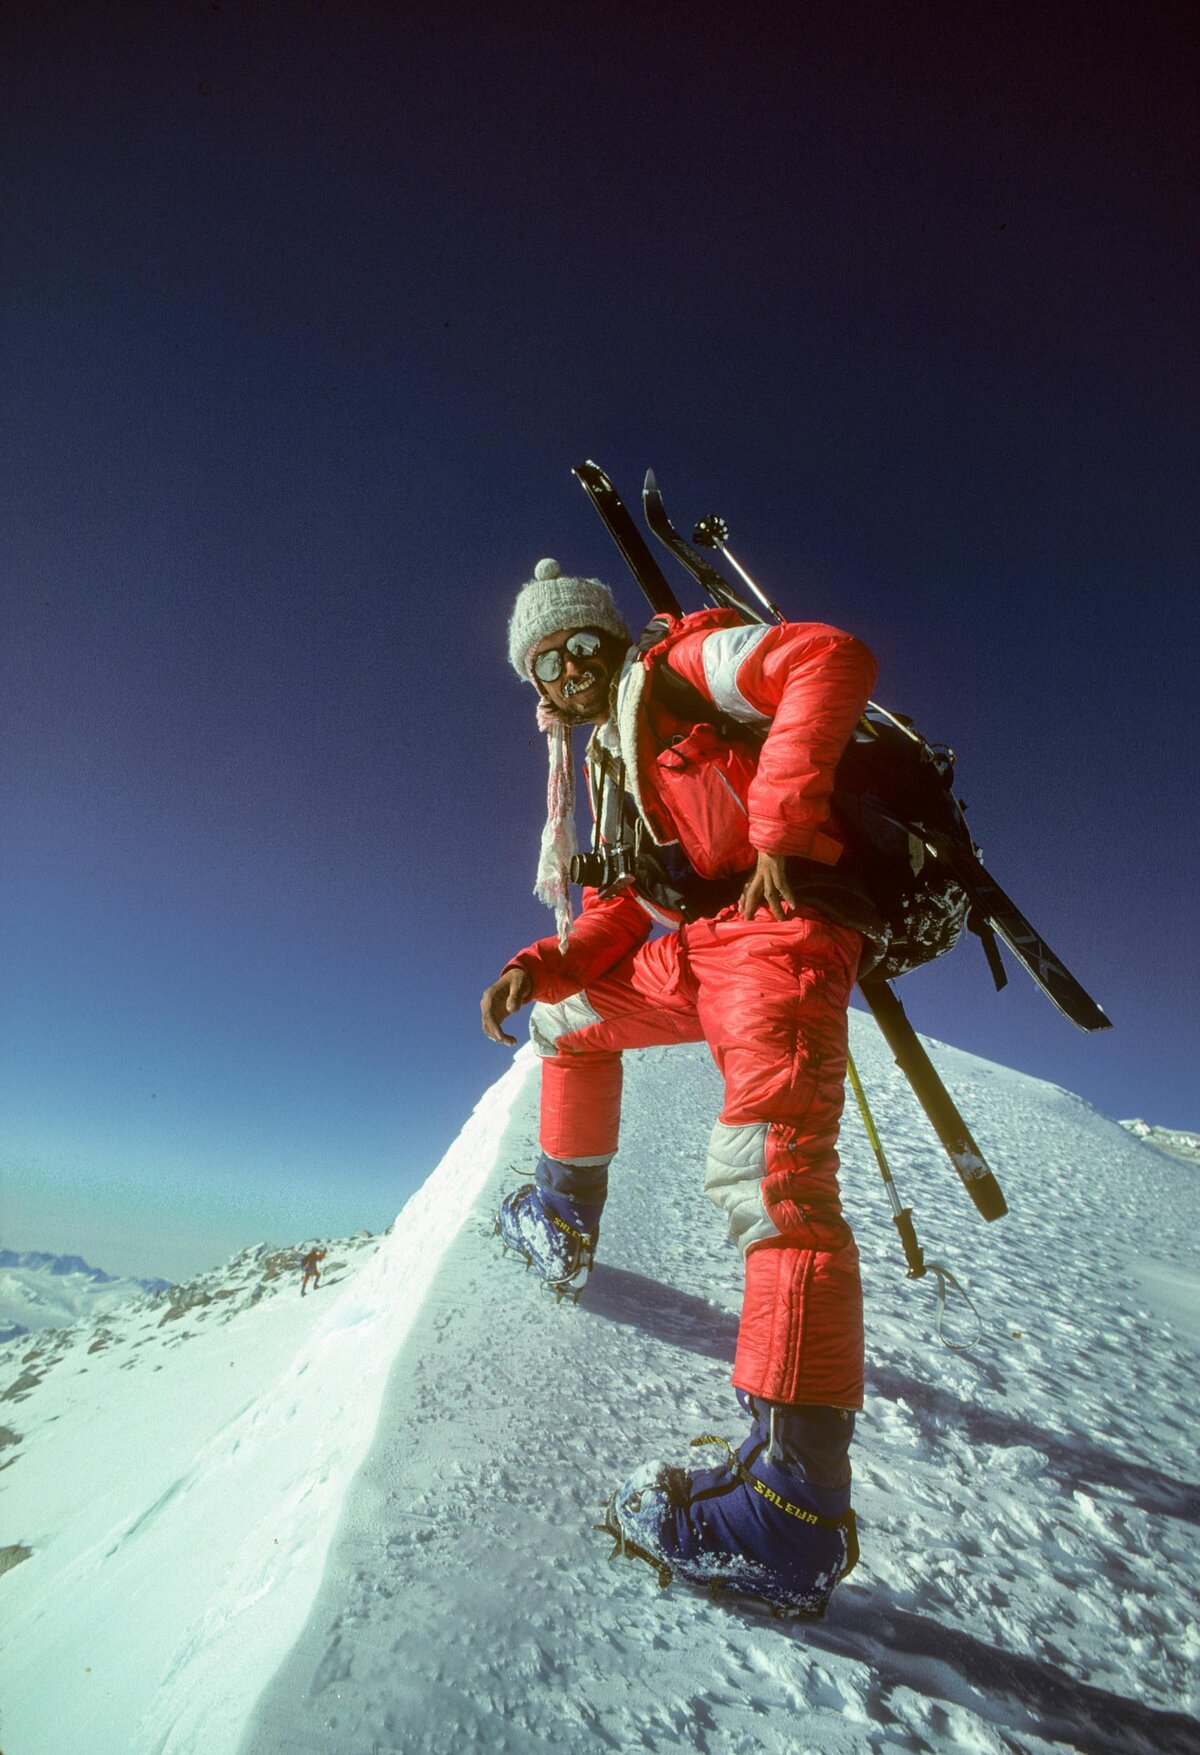 Pat Morrow completes the Seven Summits on Mount Vinson, 1985